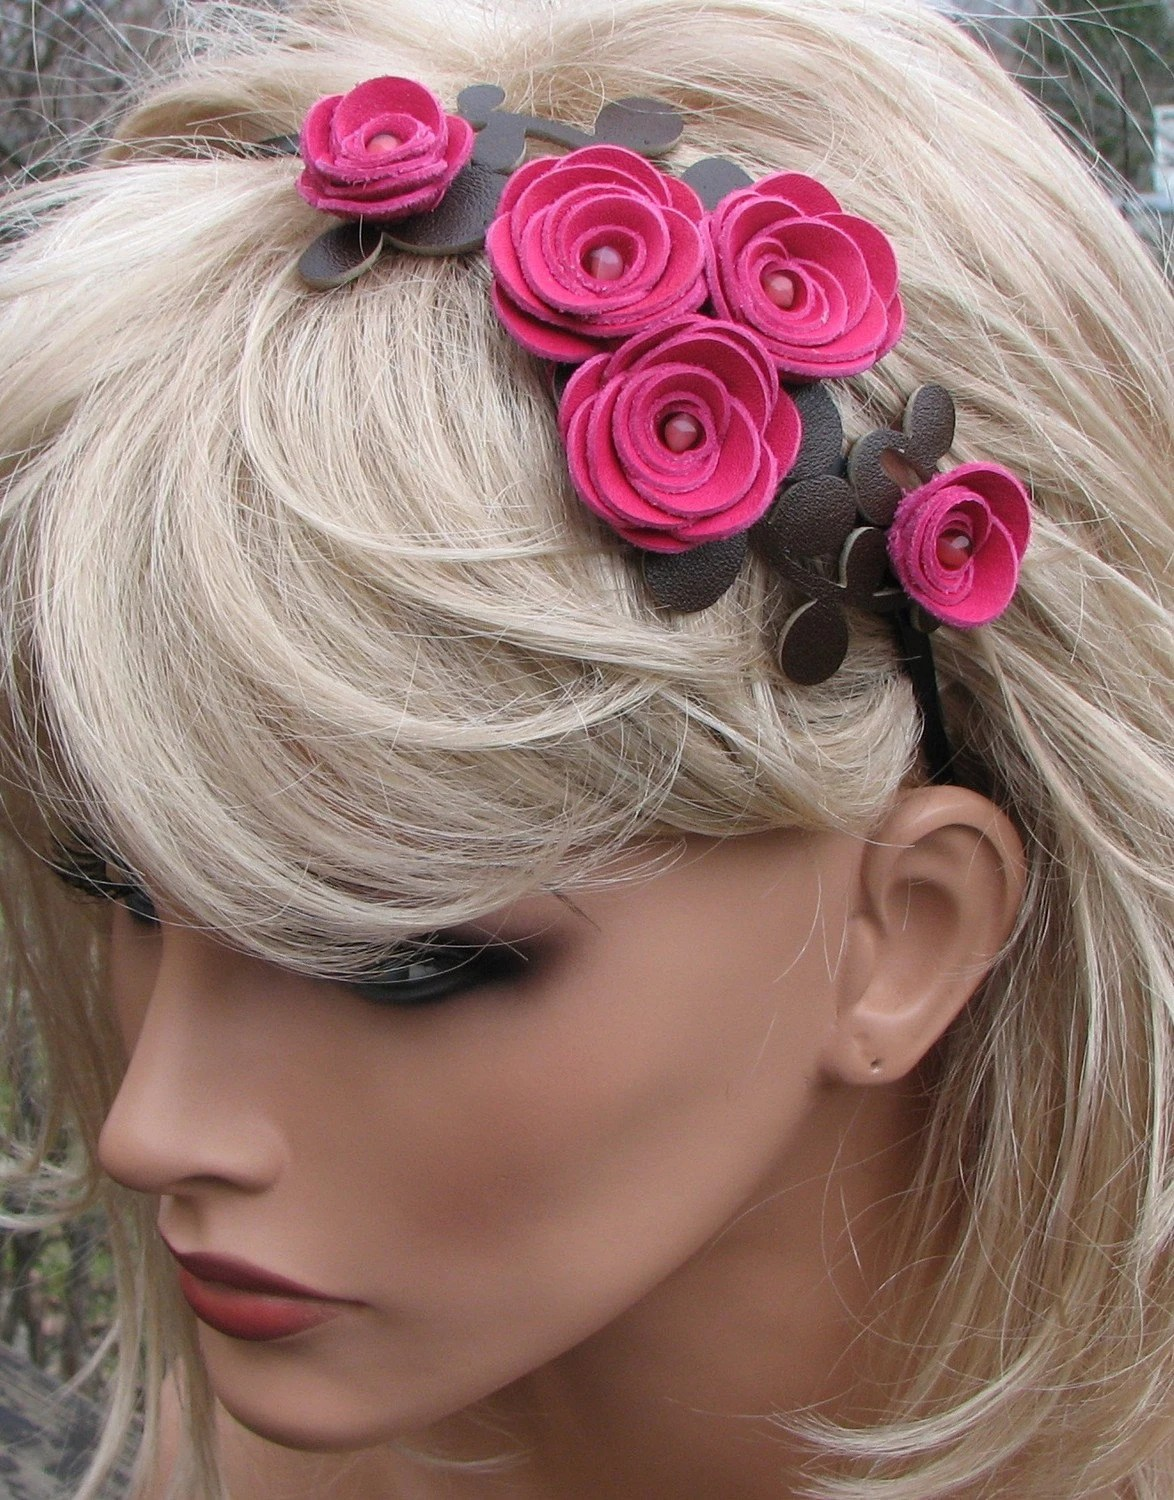 Floral Headband with Hot Pink Leather Roses and Moss Green Leaves on Black Metal Hairband, Prom